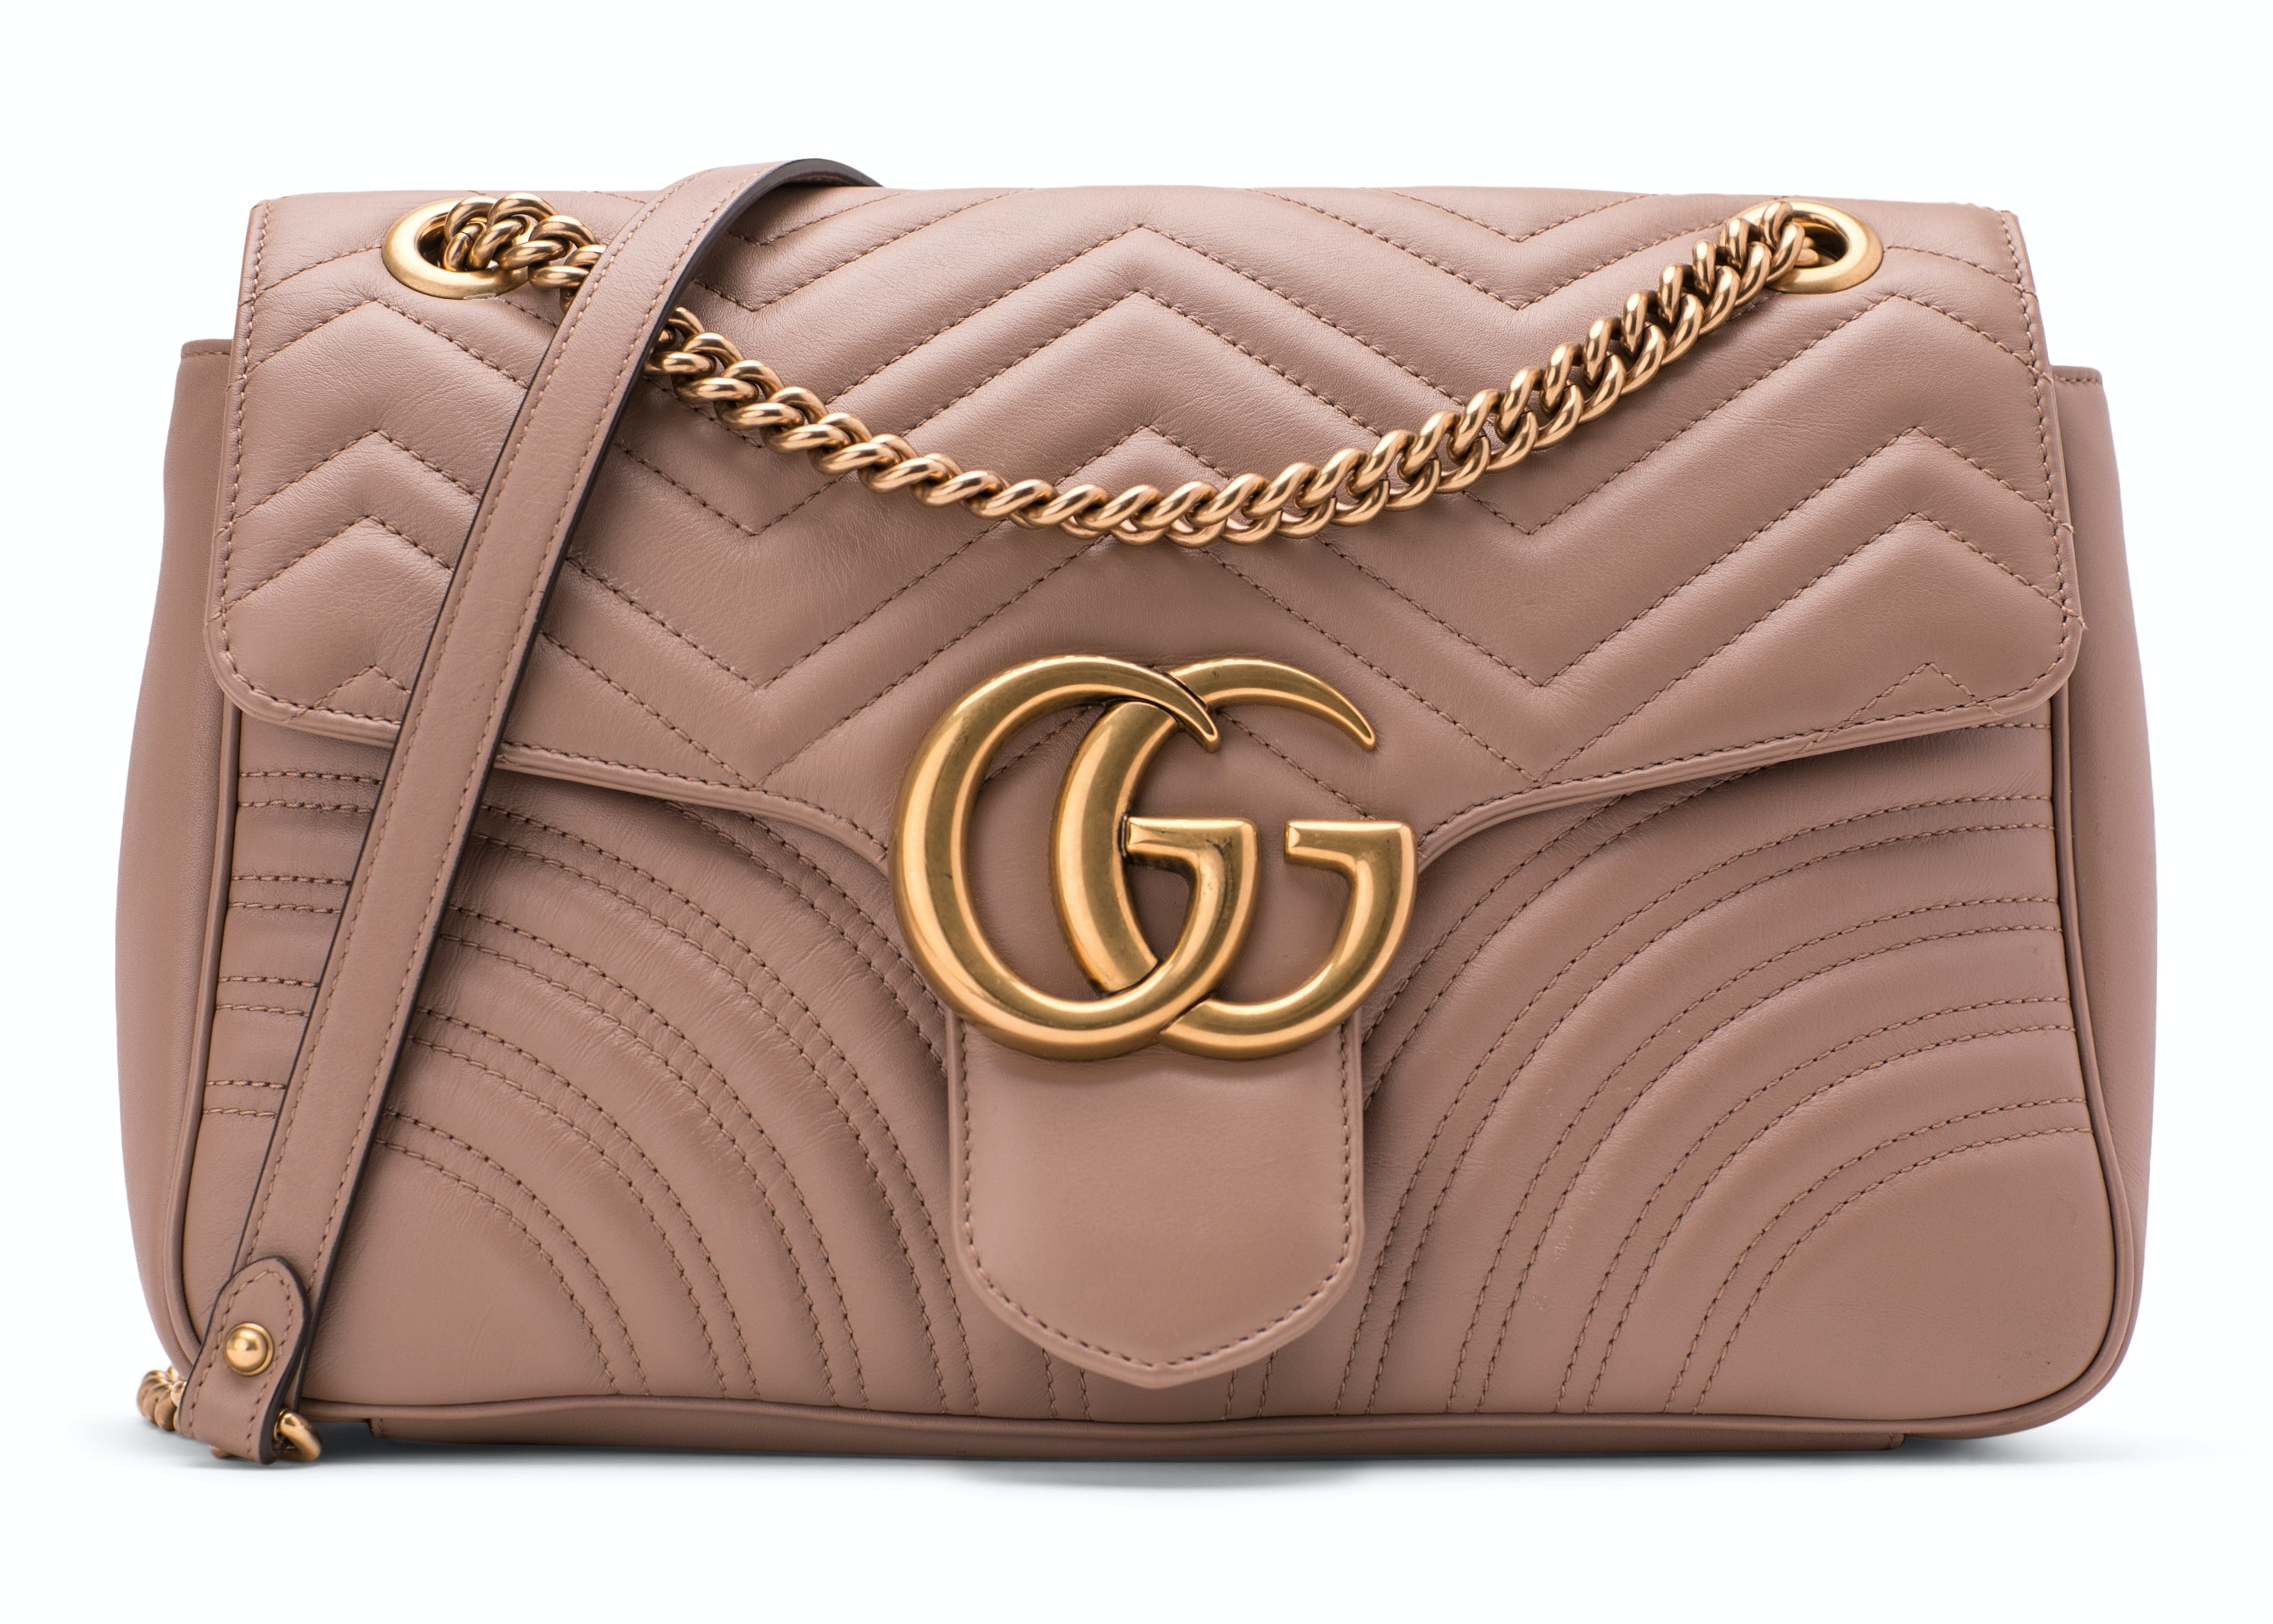 Gucci Shoulder GG Marmont Medium Dusty Pink